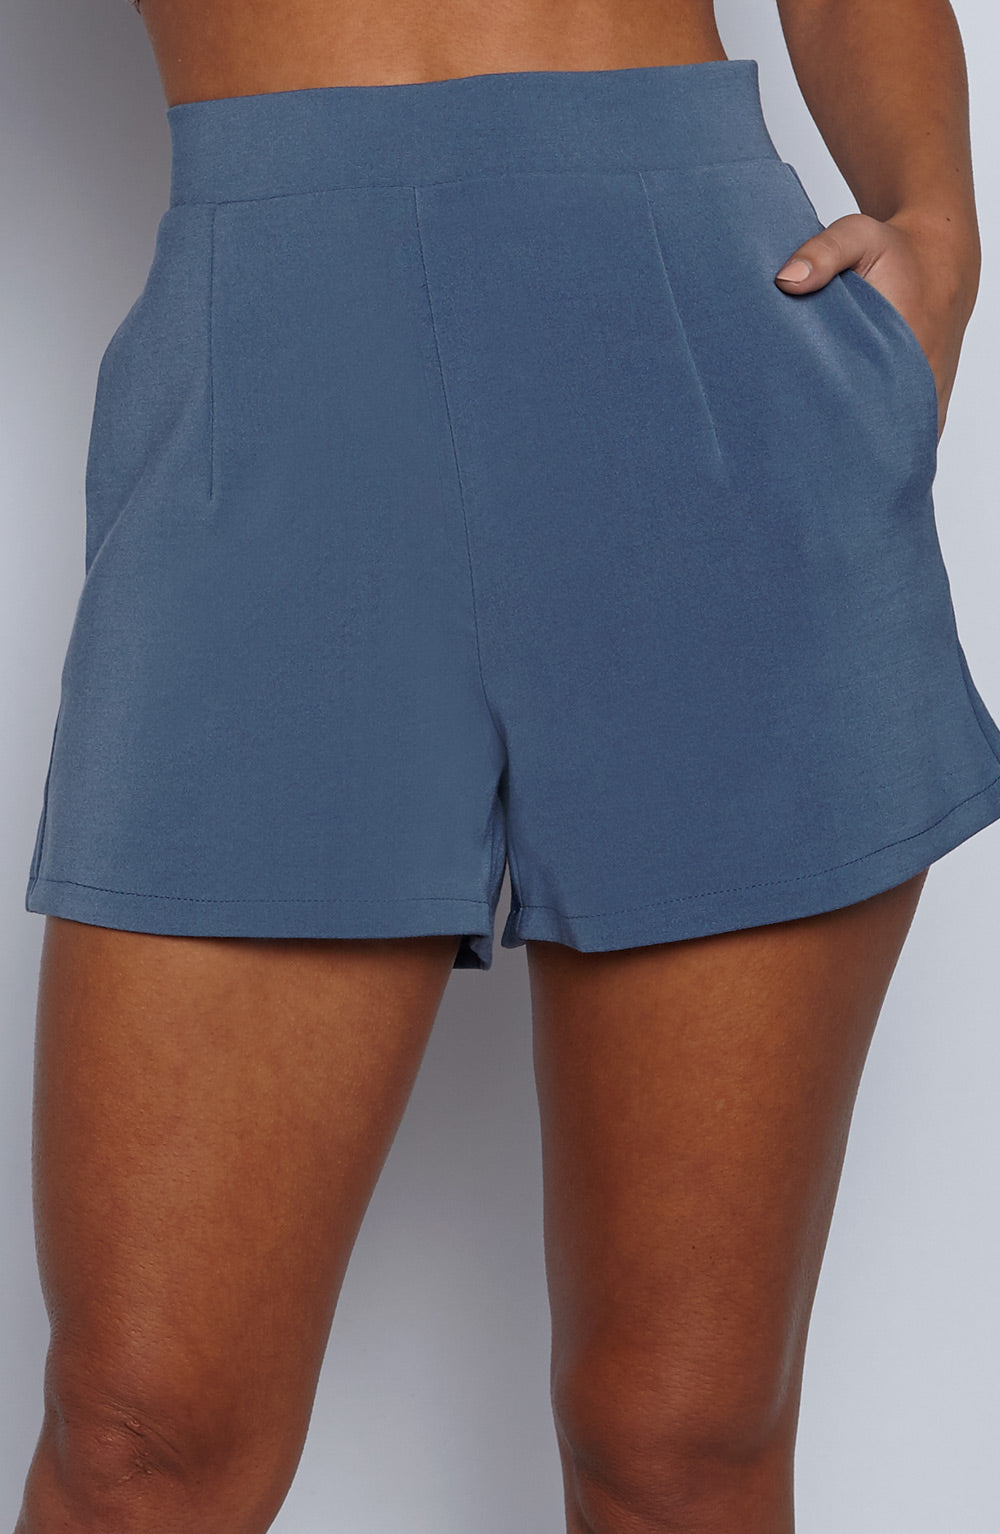 New Waves Shorts - Blue